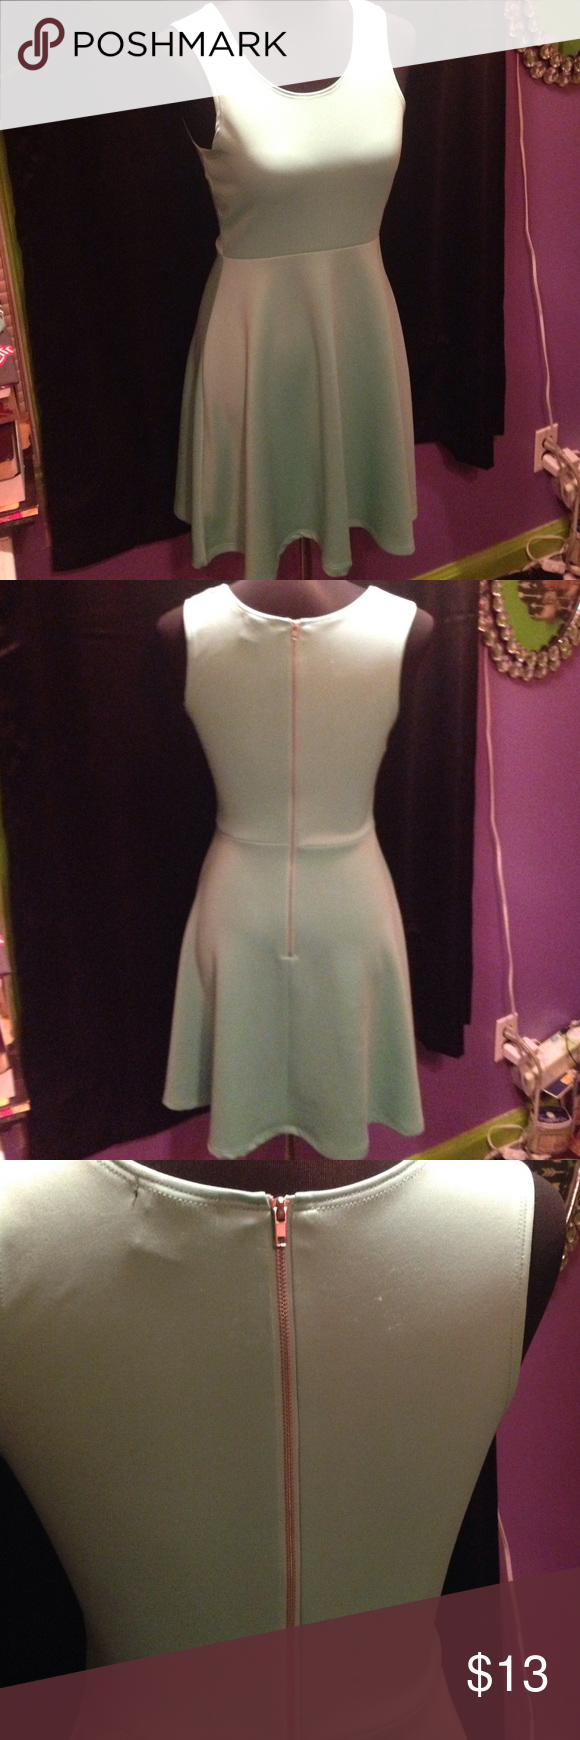 NWOT Seafoam Green Zippered Back Dress I bought this from Rue21 and washed it but I never wore it. It's just been hanging in my closet. It has a couple pills from being washed but other than that it's in perfect condition! It's a pretty Seafoam green color but I couldn't get the exact color to show but the last pic is closest to the true color. It also has a metal zipper down the back. Rue 21 Dresses